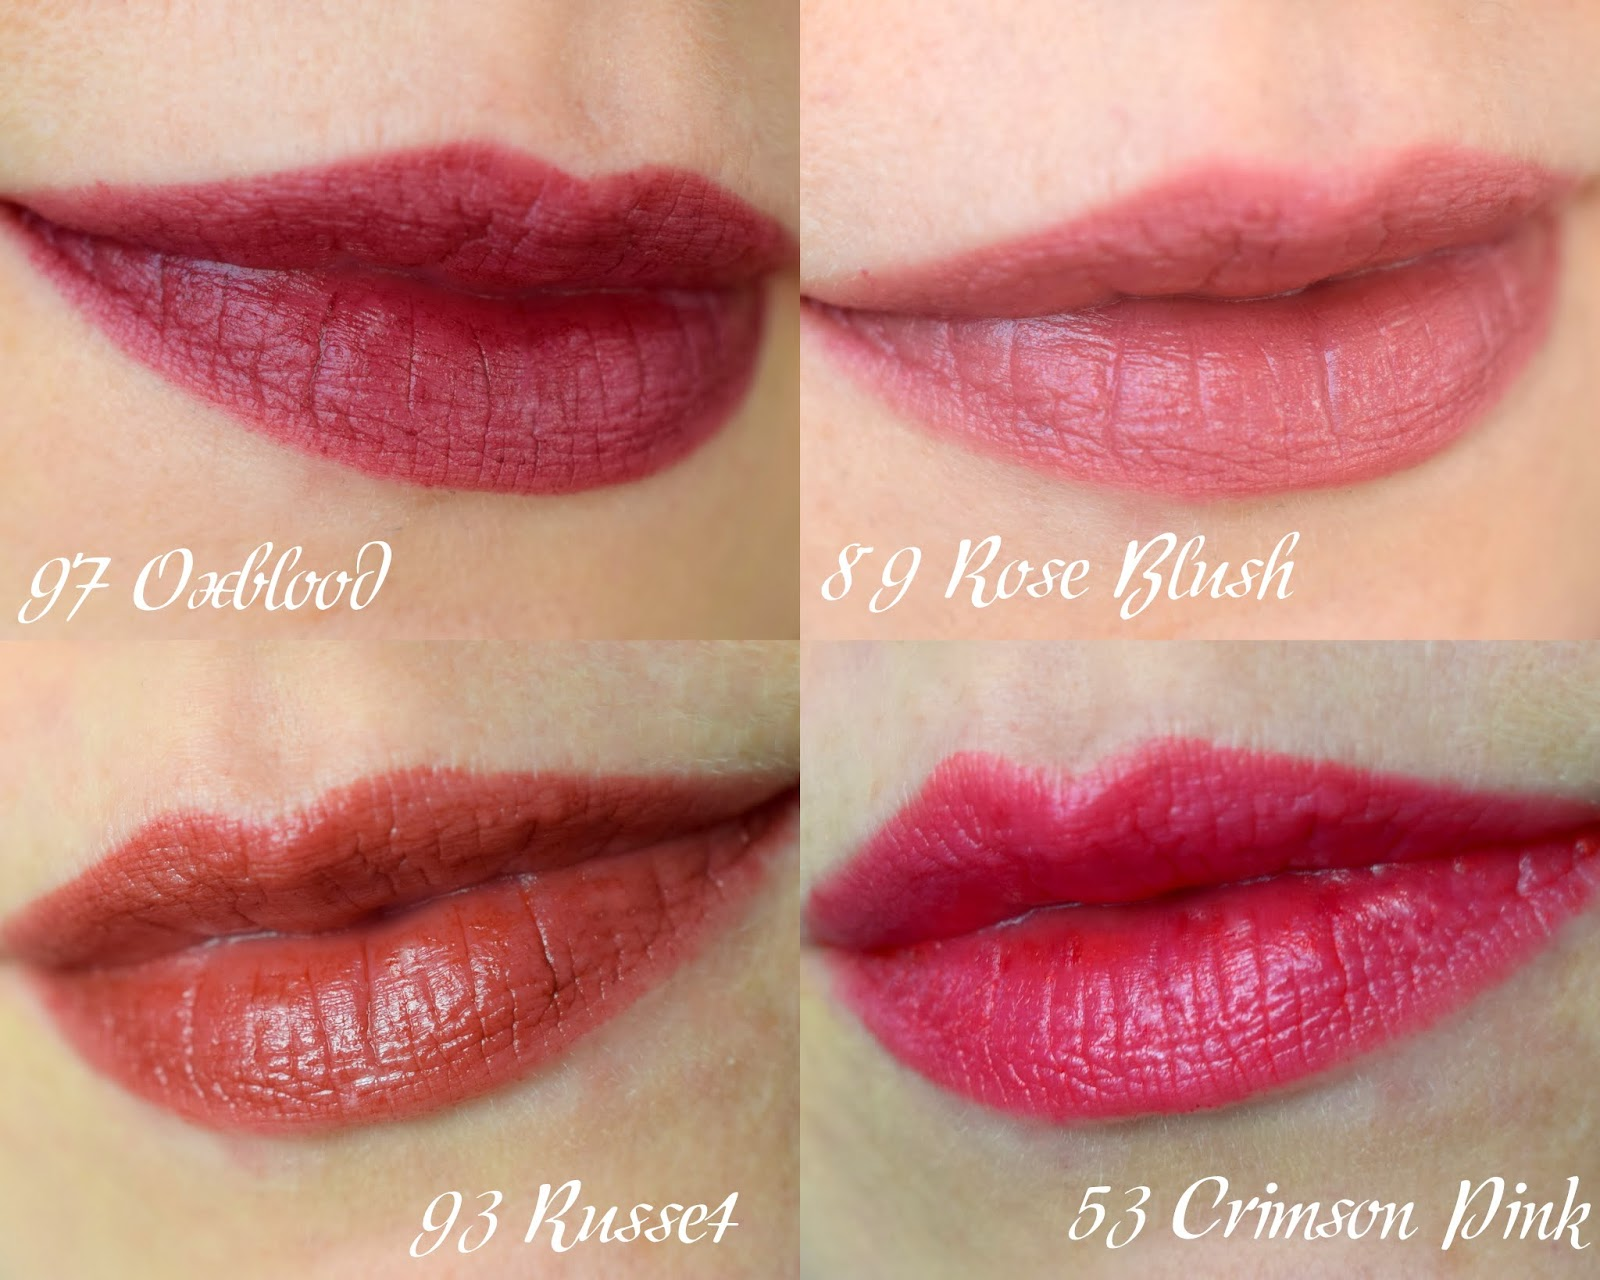 Swatches Burberry Kisses 89 Rose Blush, 53 Crimson Pink, 93 Russet, 97 Oxblood